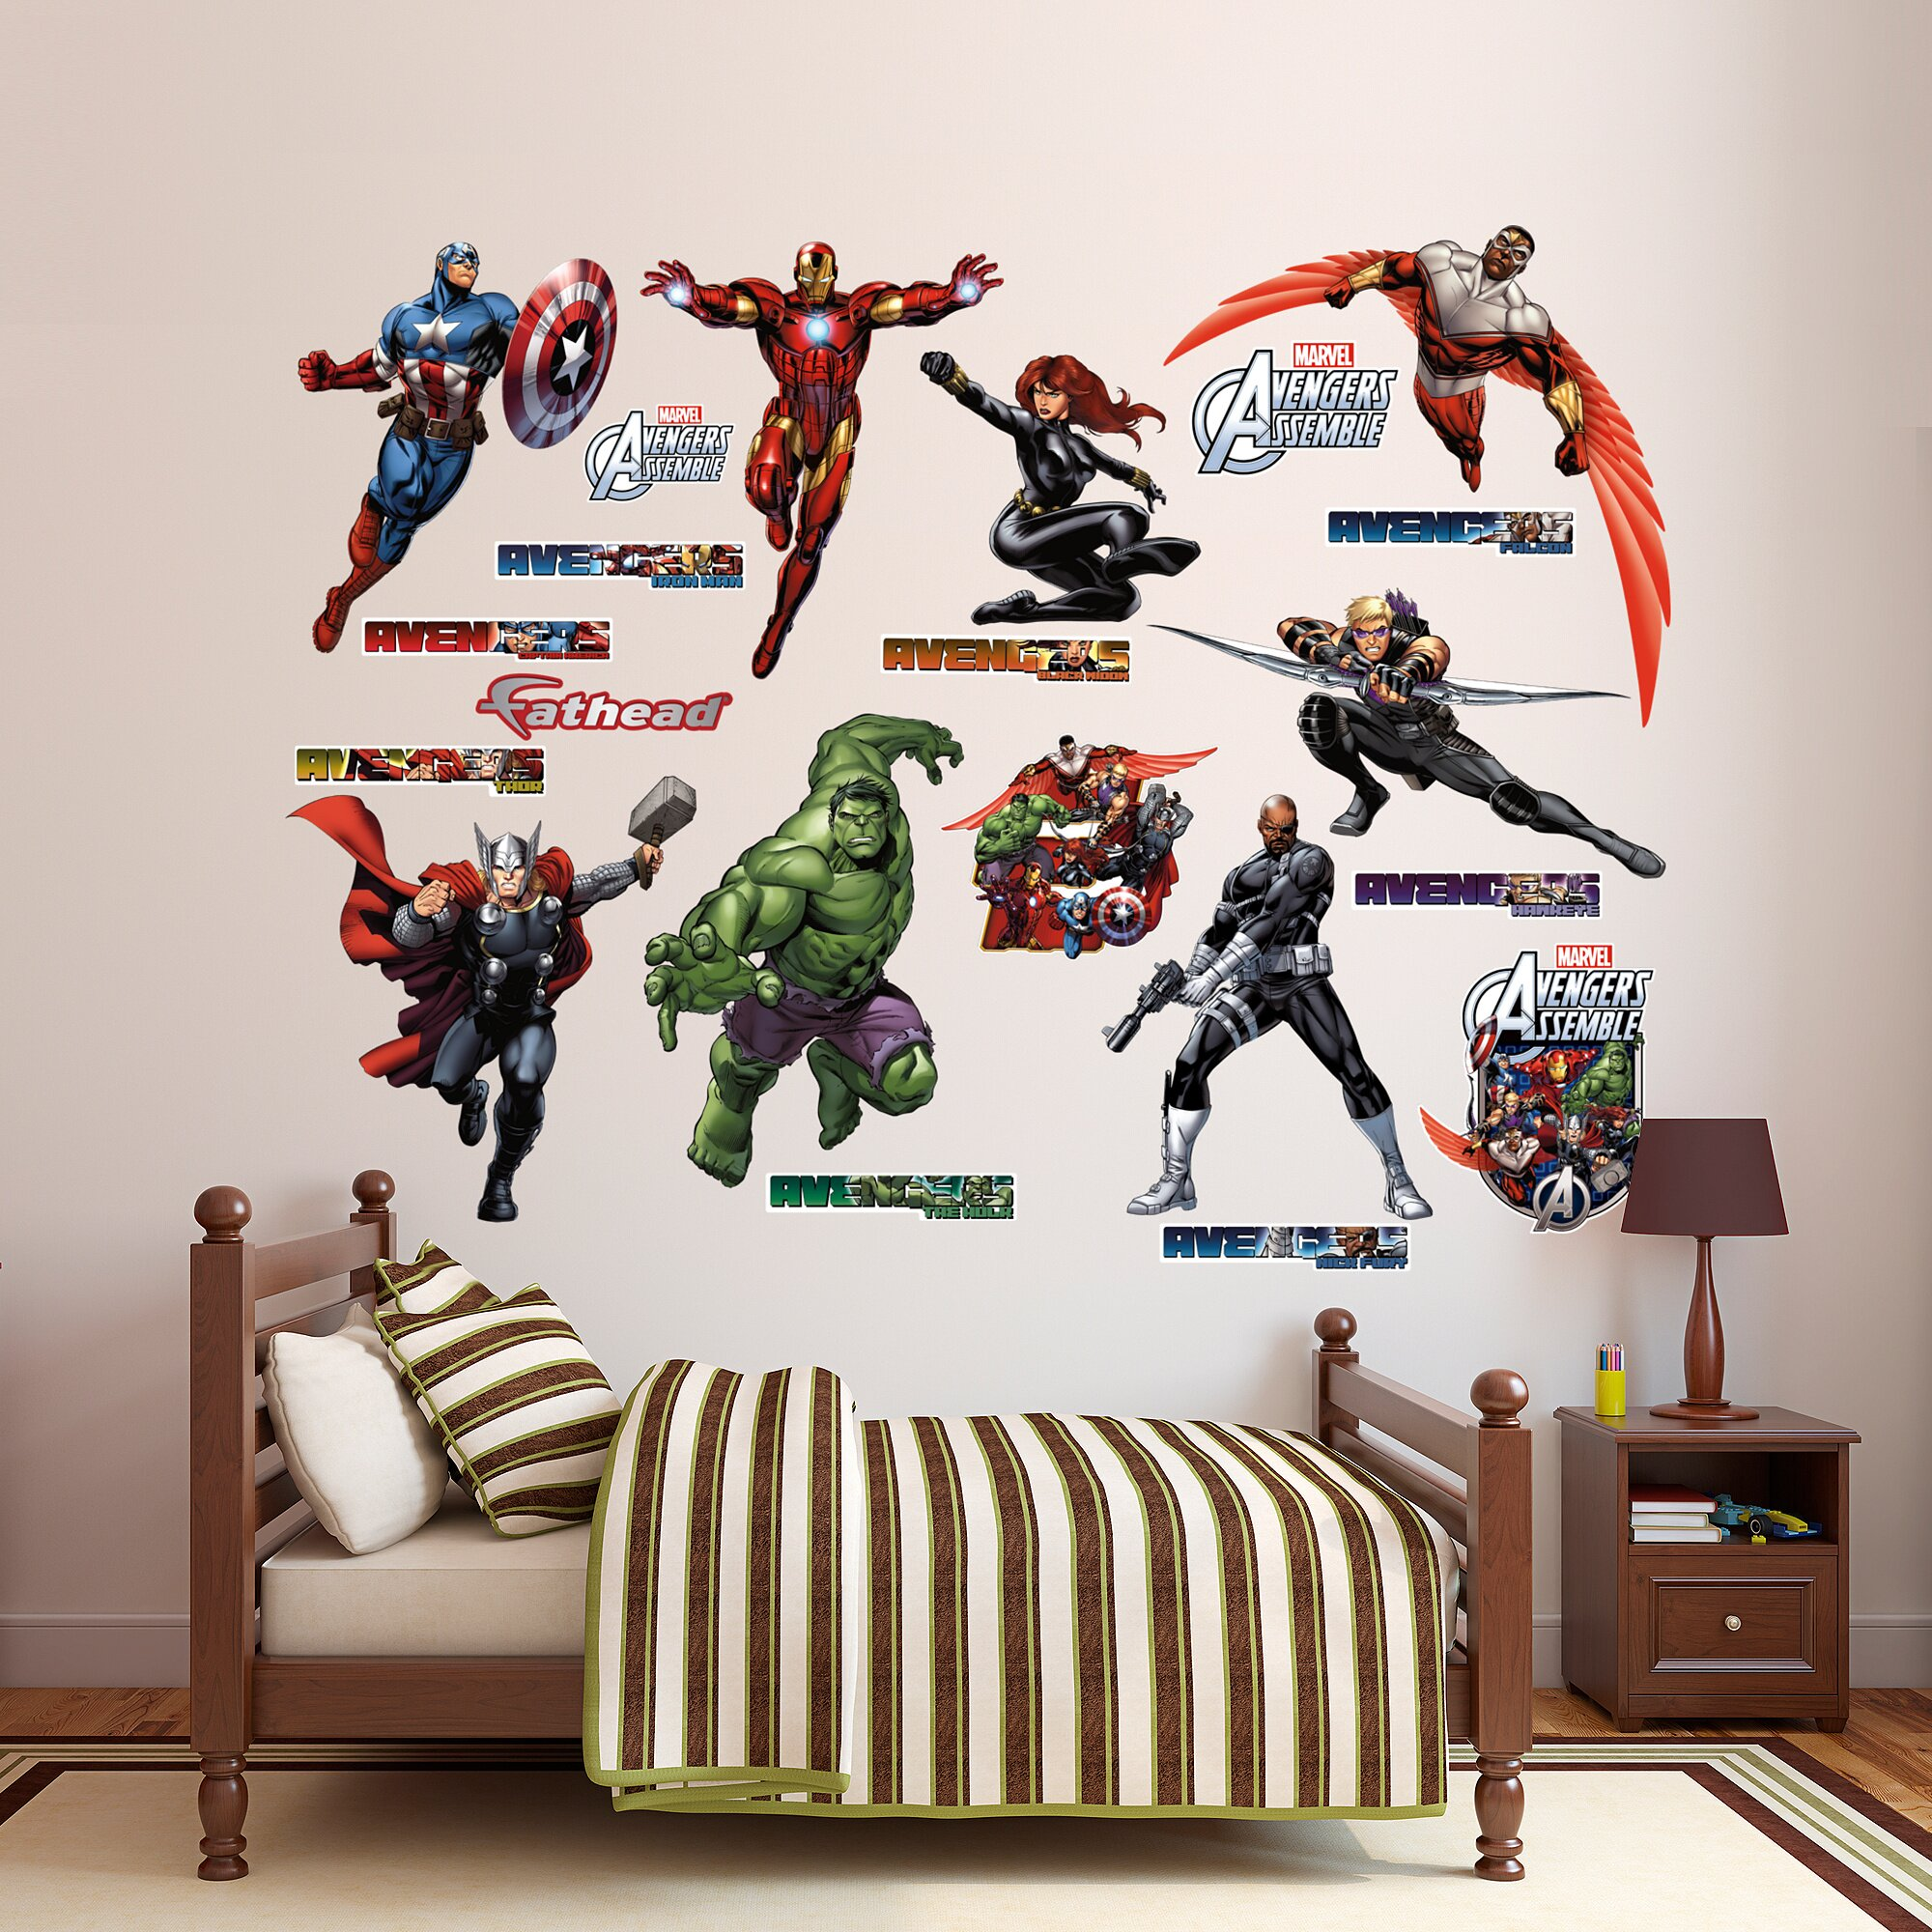 Fathead RealBig Marvel Avengers Assemble Wall Decal